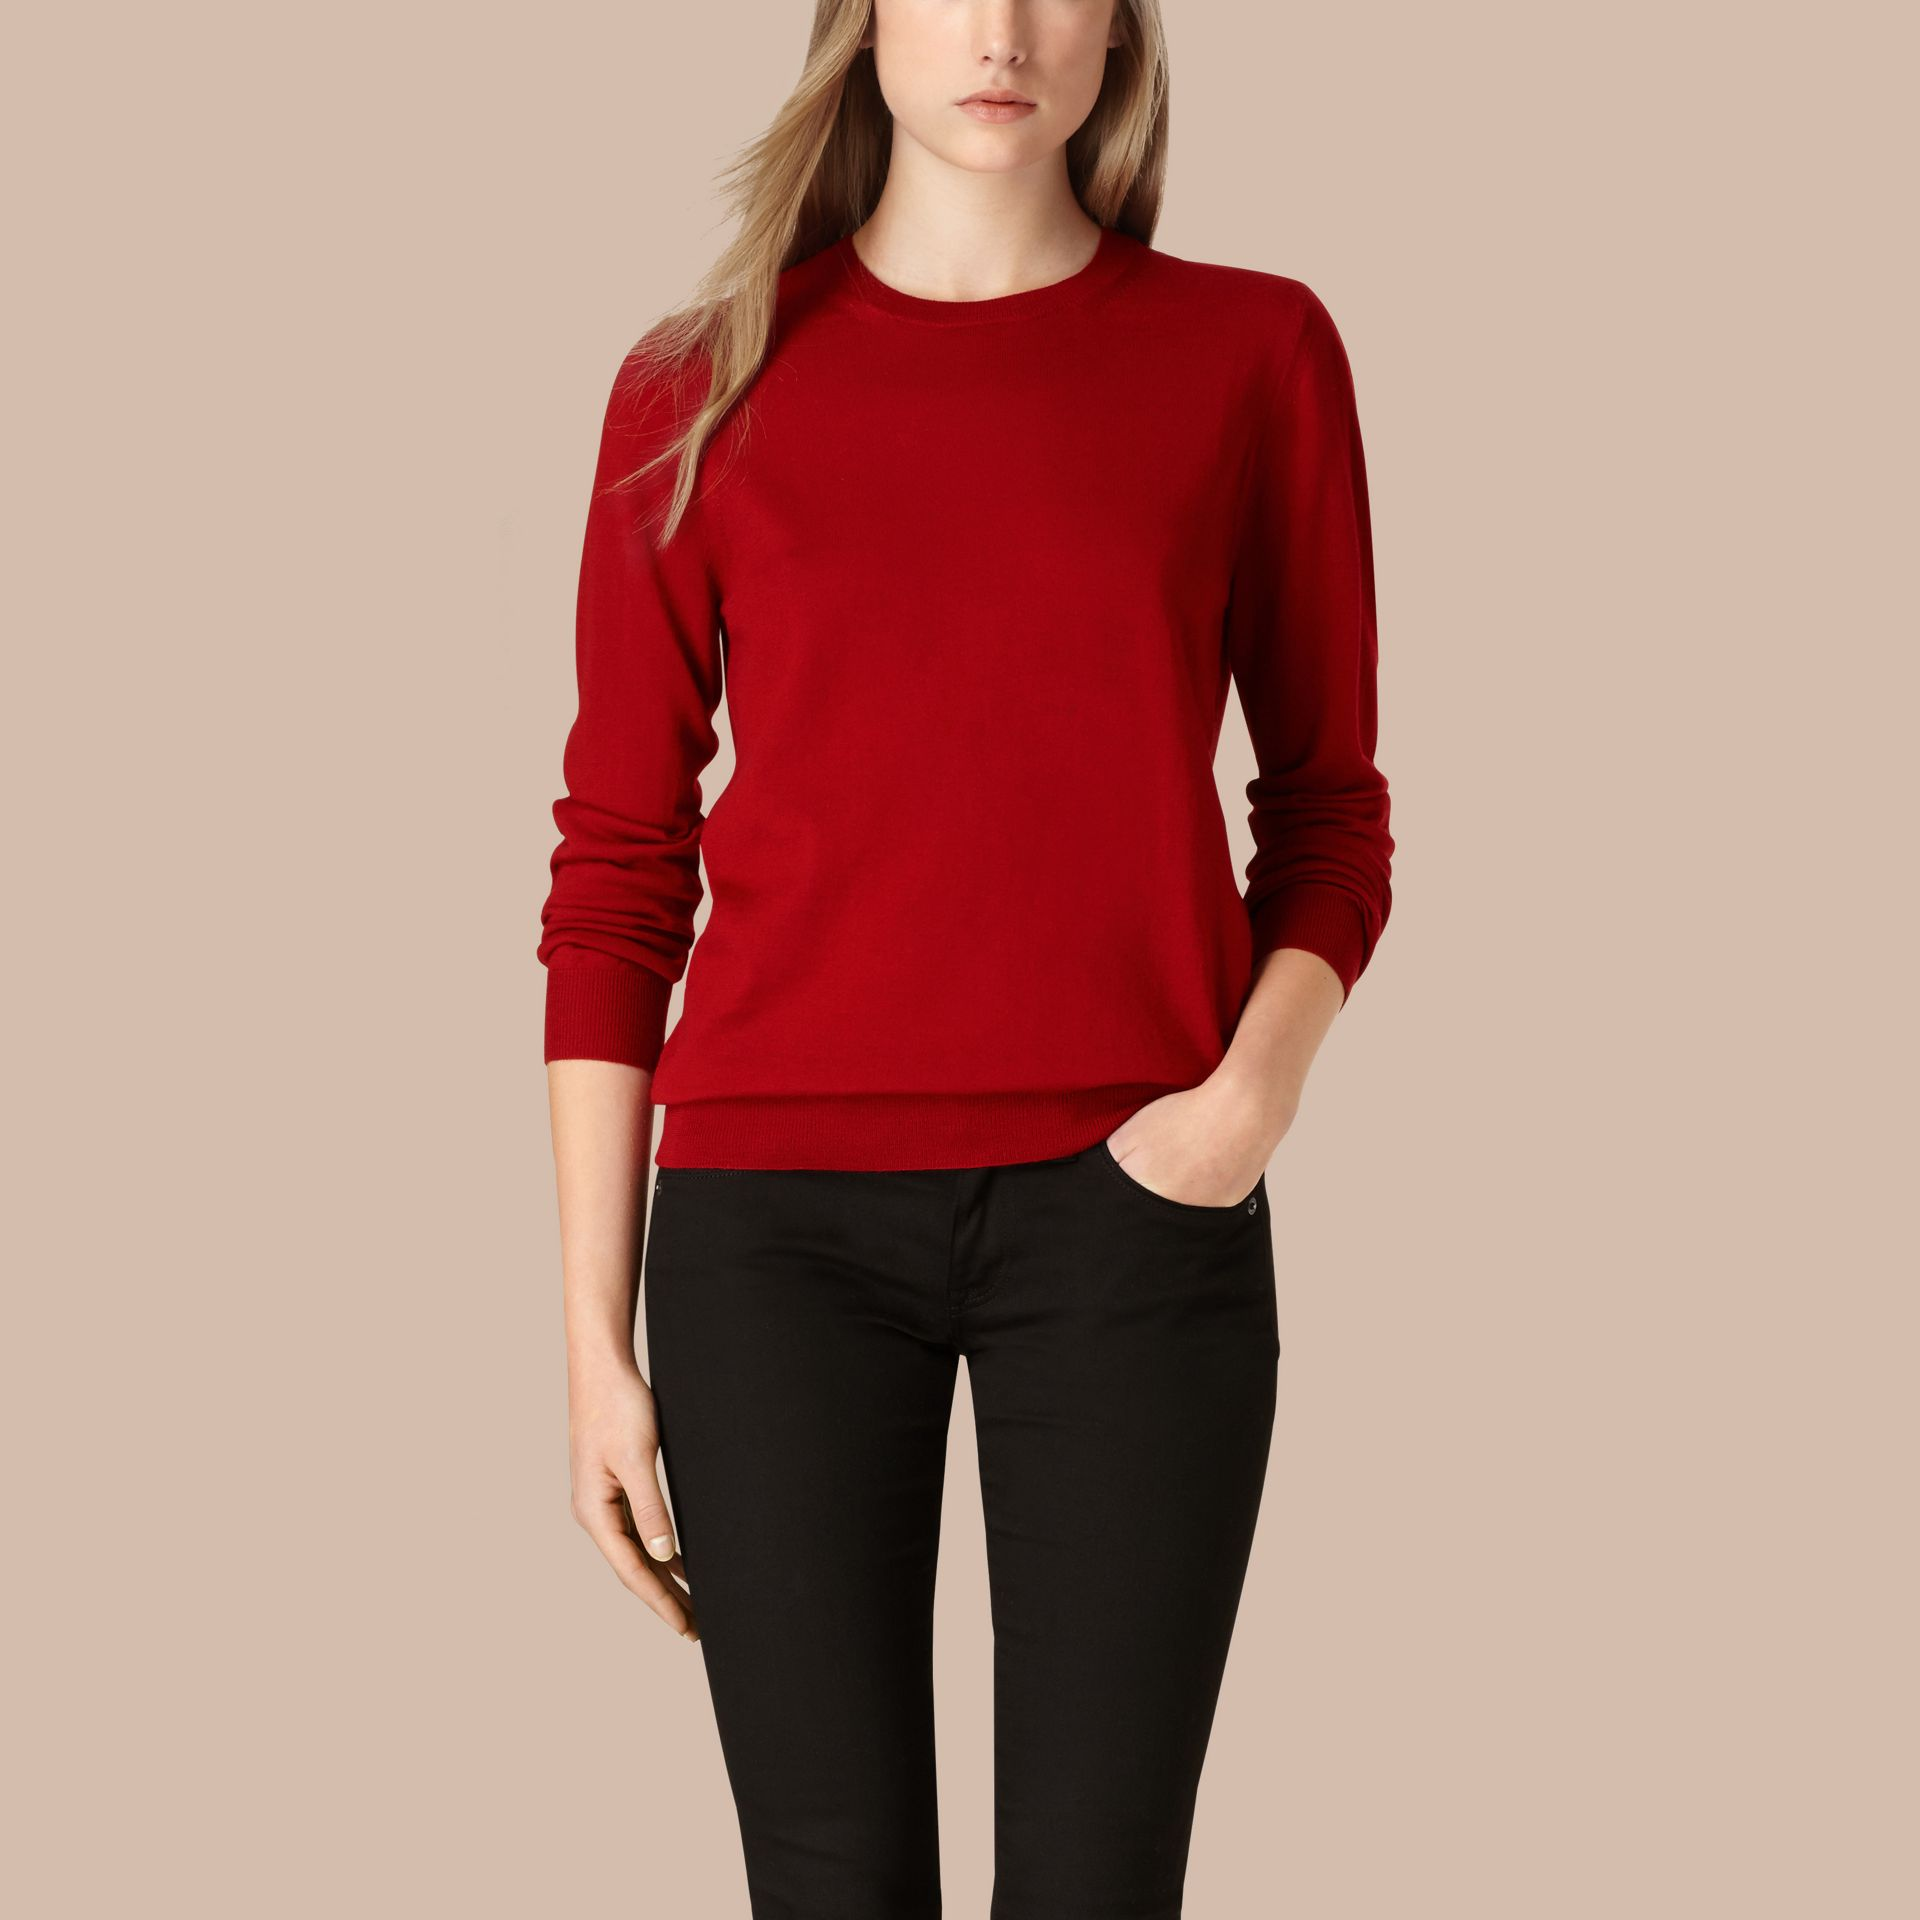 Parade red Check Detail Merino Wool Crew Neck Sweater Parade Red - gallery image 1